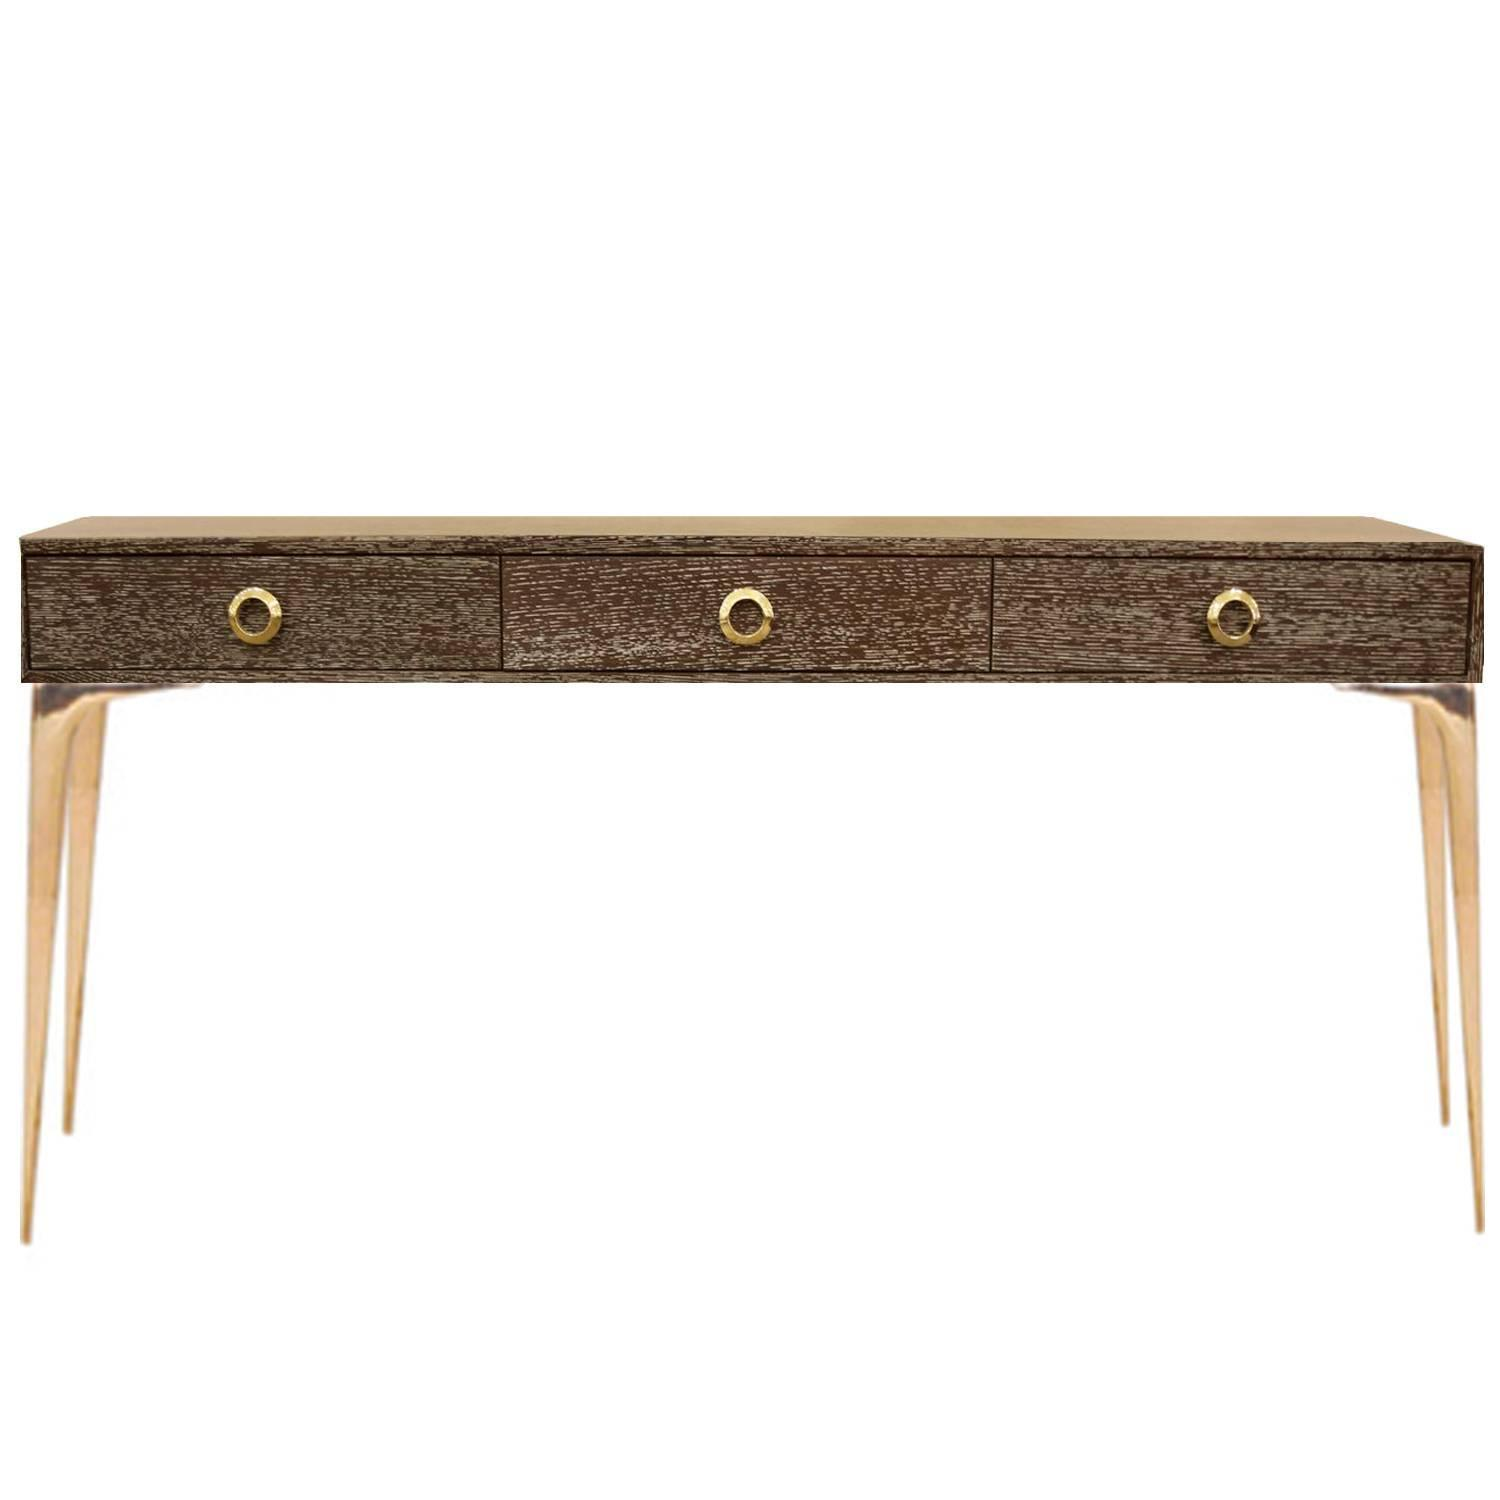 1st Dibs 1st dibs 10 Incredible Modern Console Tables on 1st Dibs StilettoConsole2 z